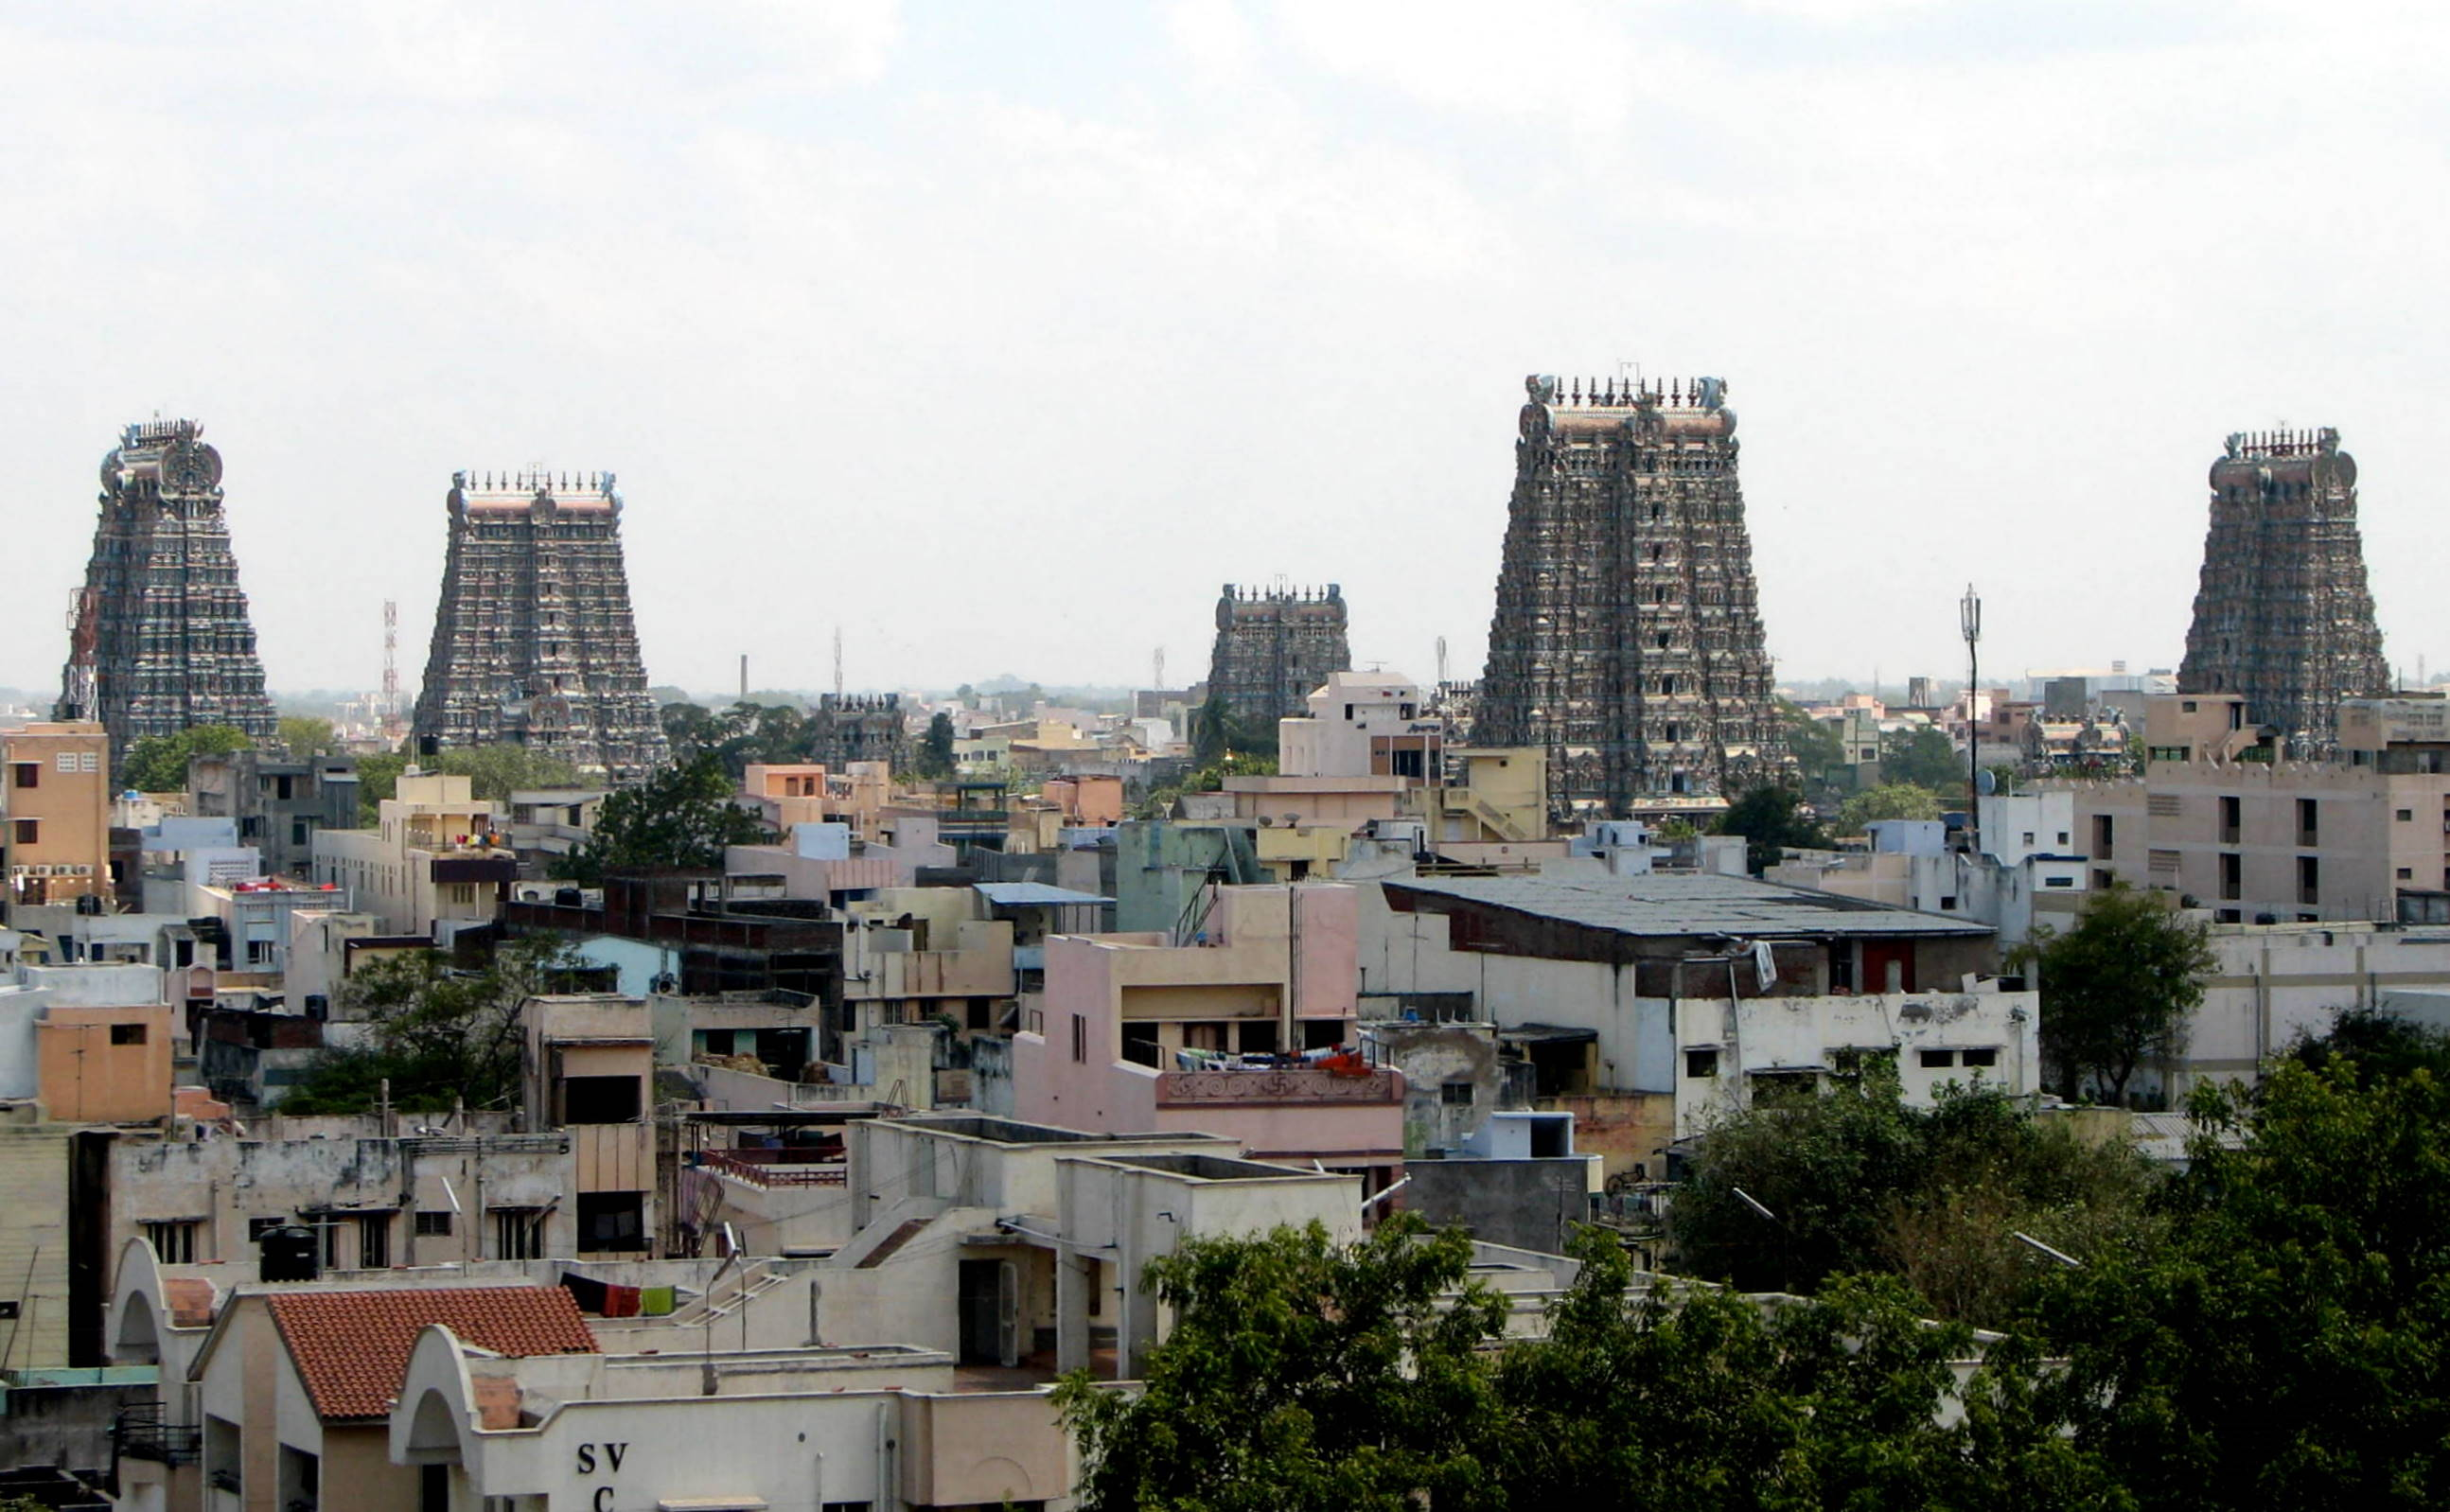 Madurai India  City pictures : Madurai, India Wikimedia Commons